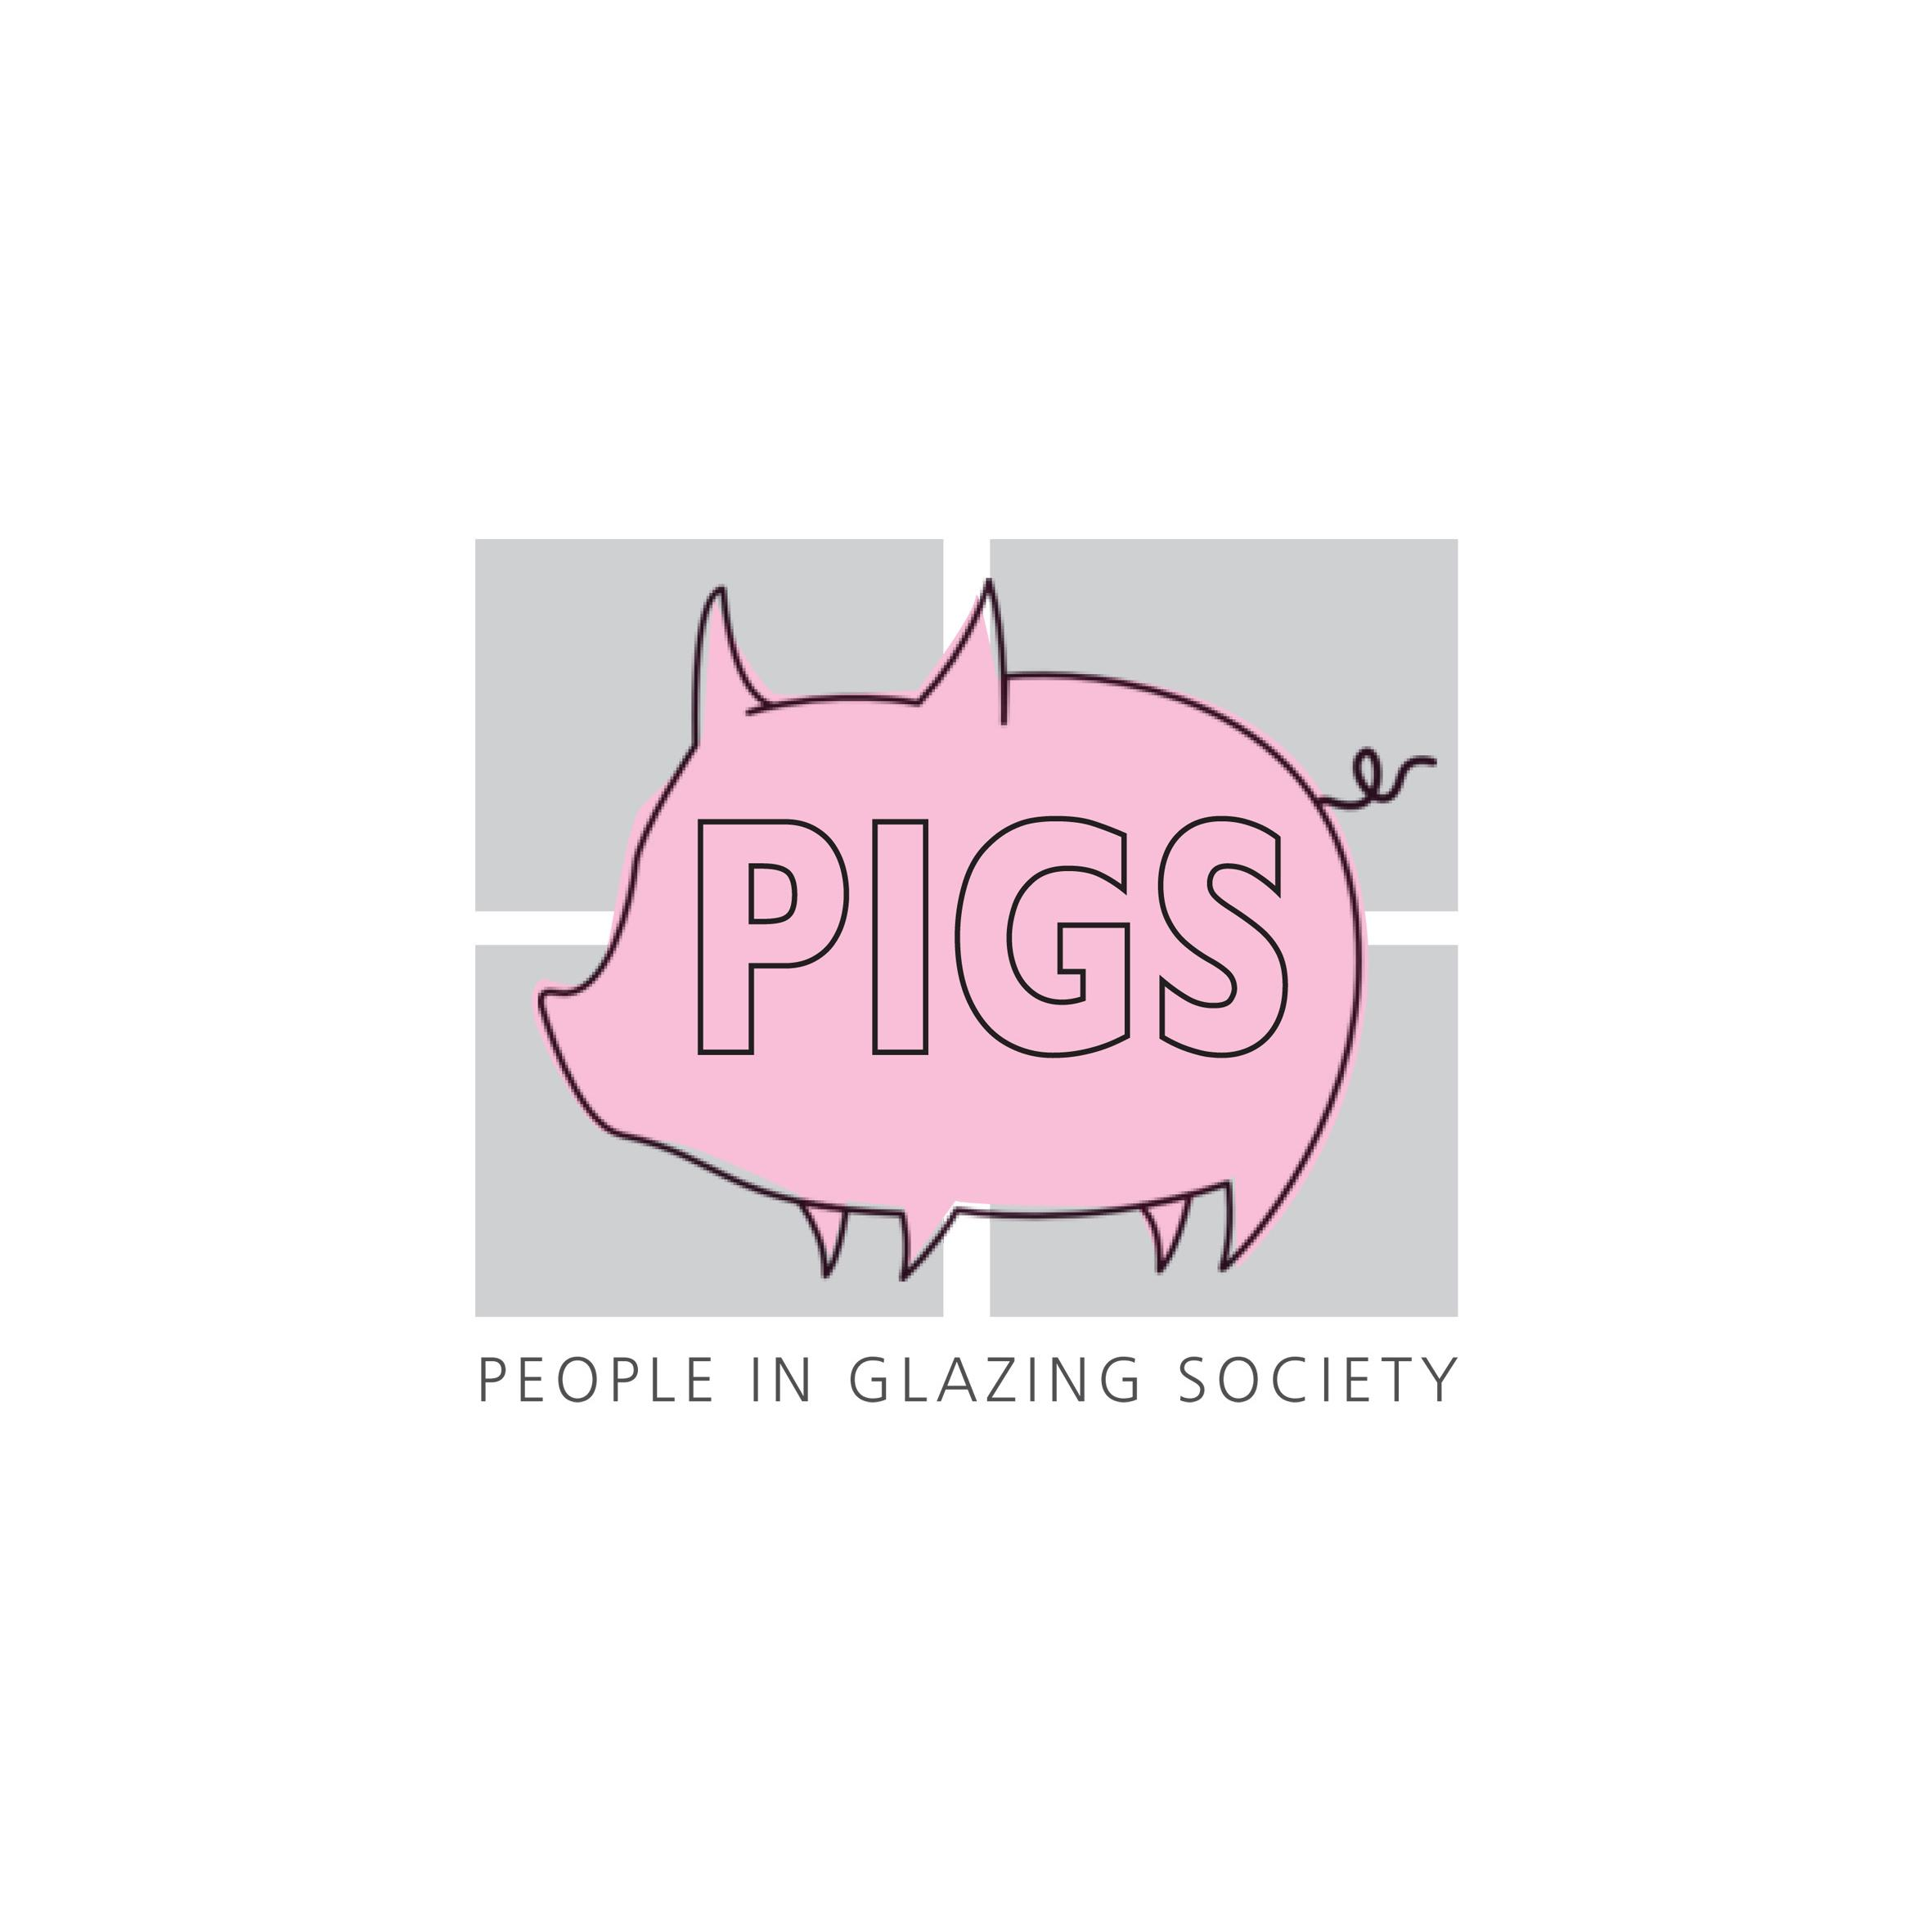 PIGS Networking Glasgow September 2017